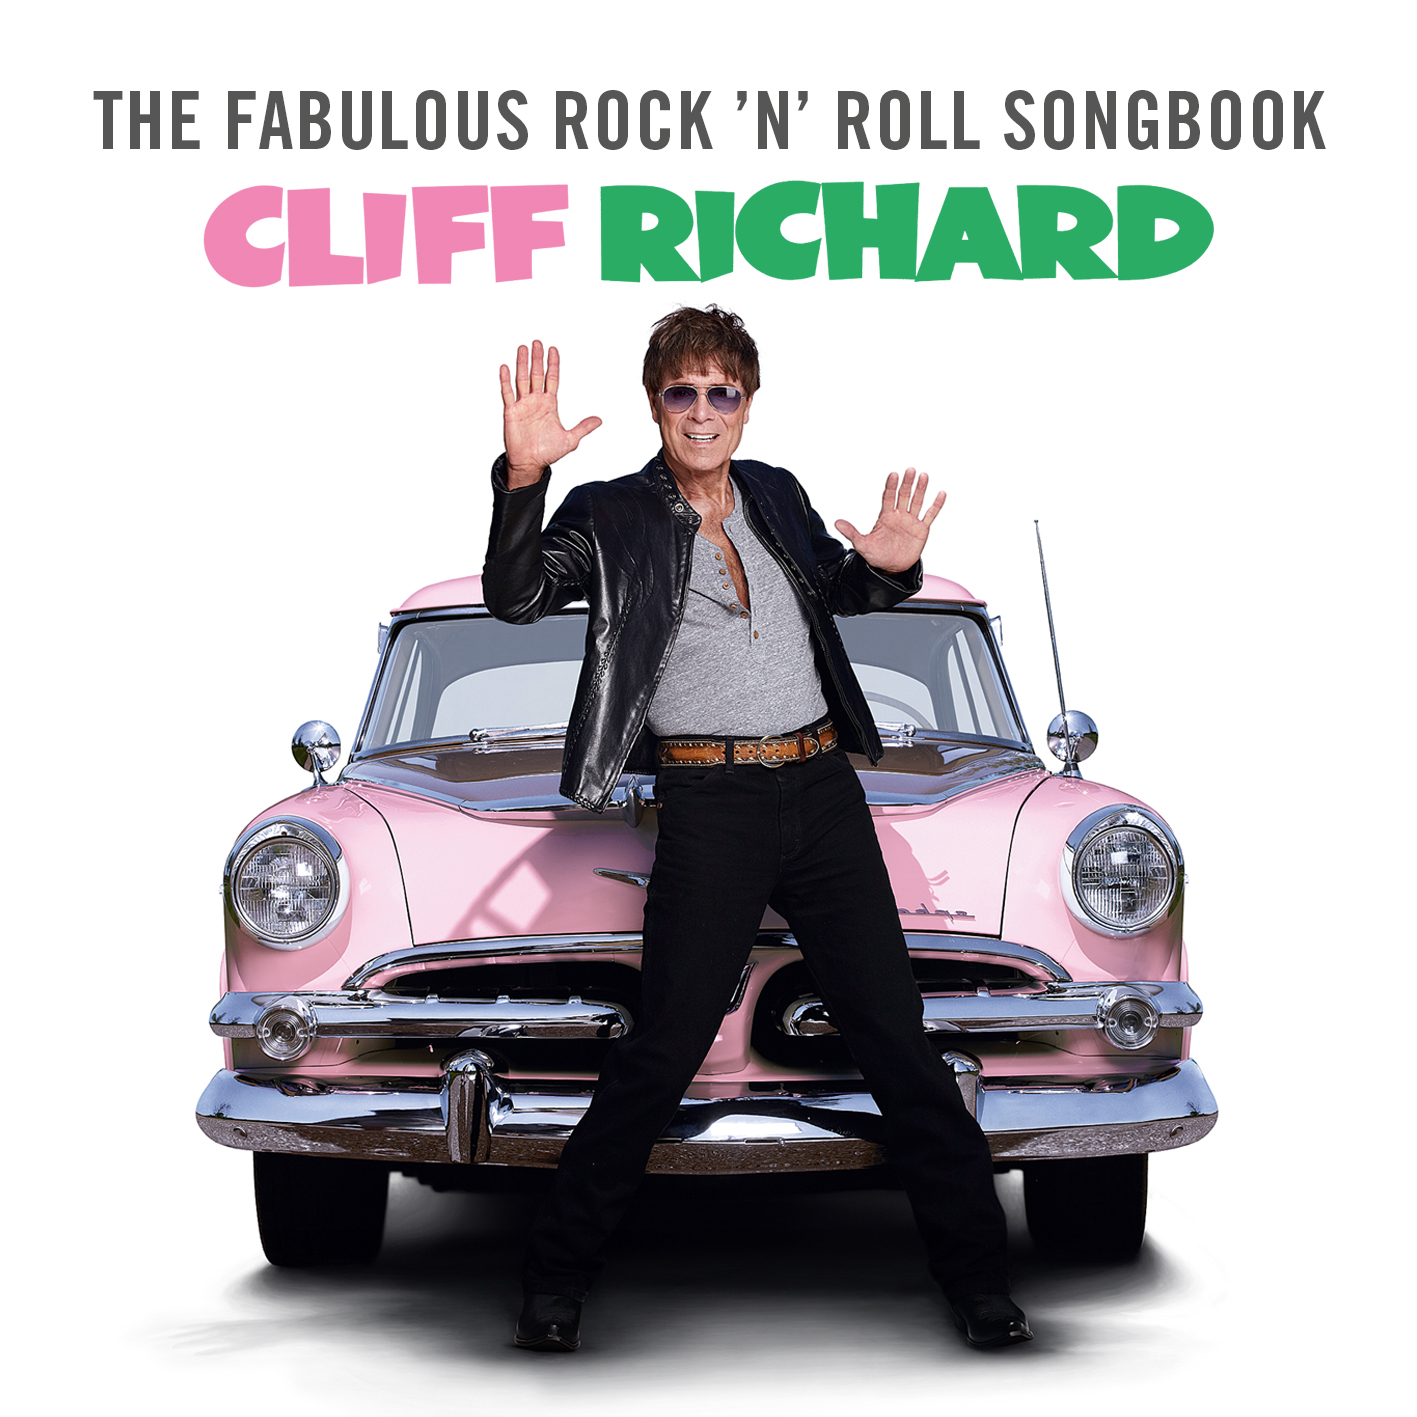 Cliff Richard - The Fabulous Rock 'n' Roll Songbook CD